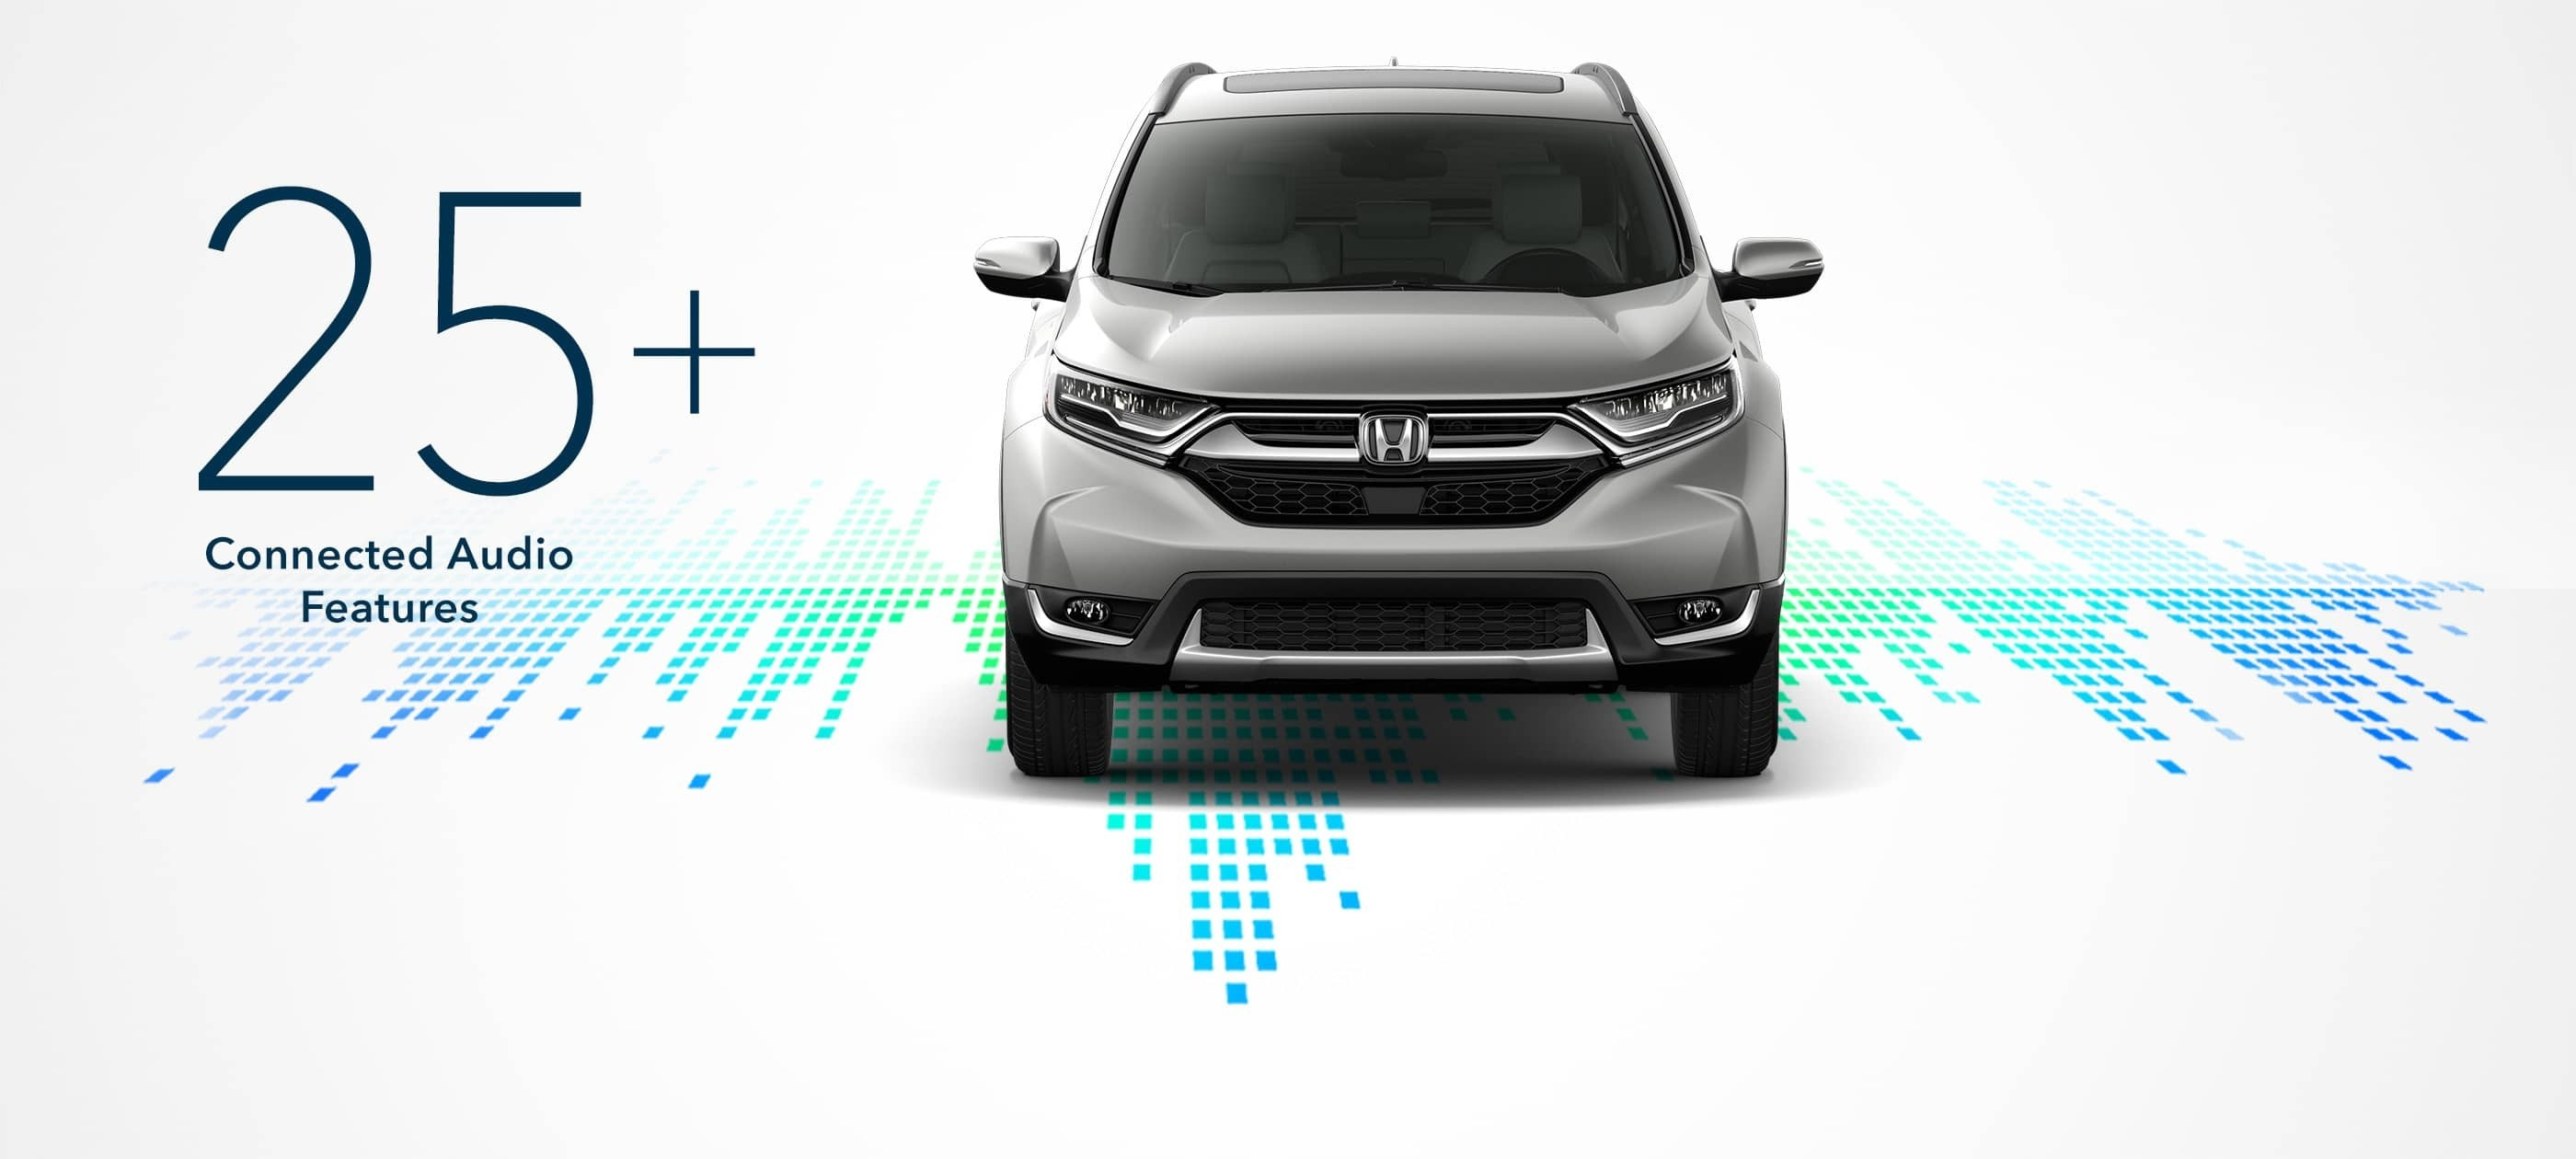 2017 Honda CR-V has over 25 connected audio features